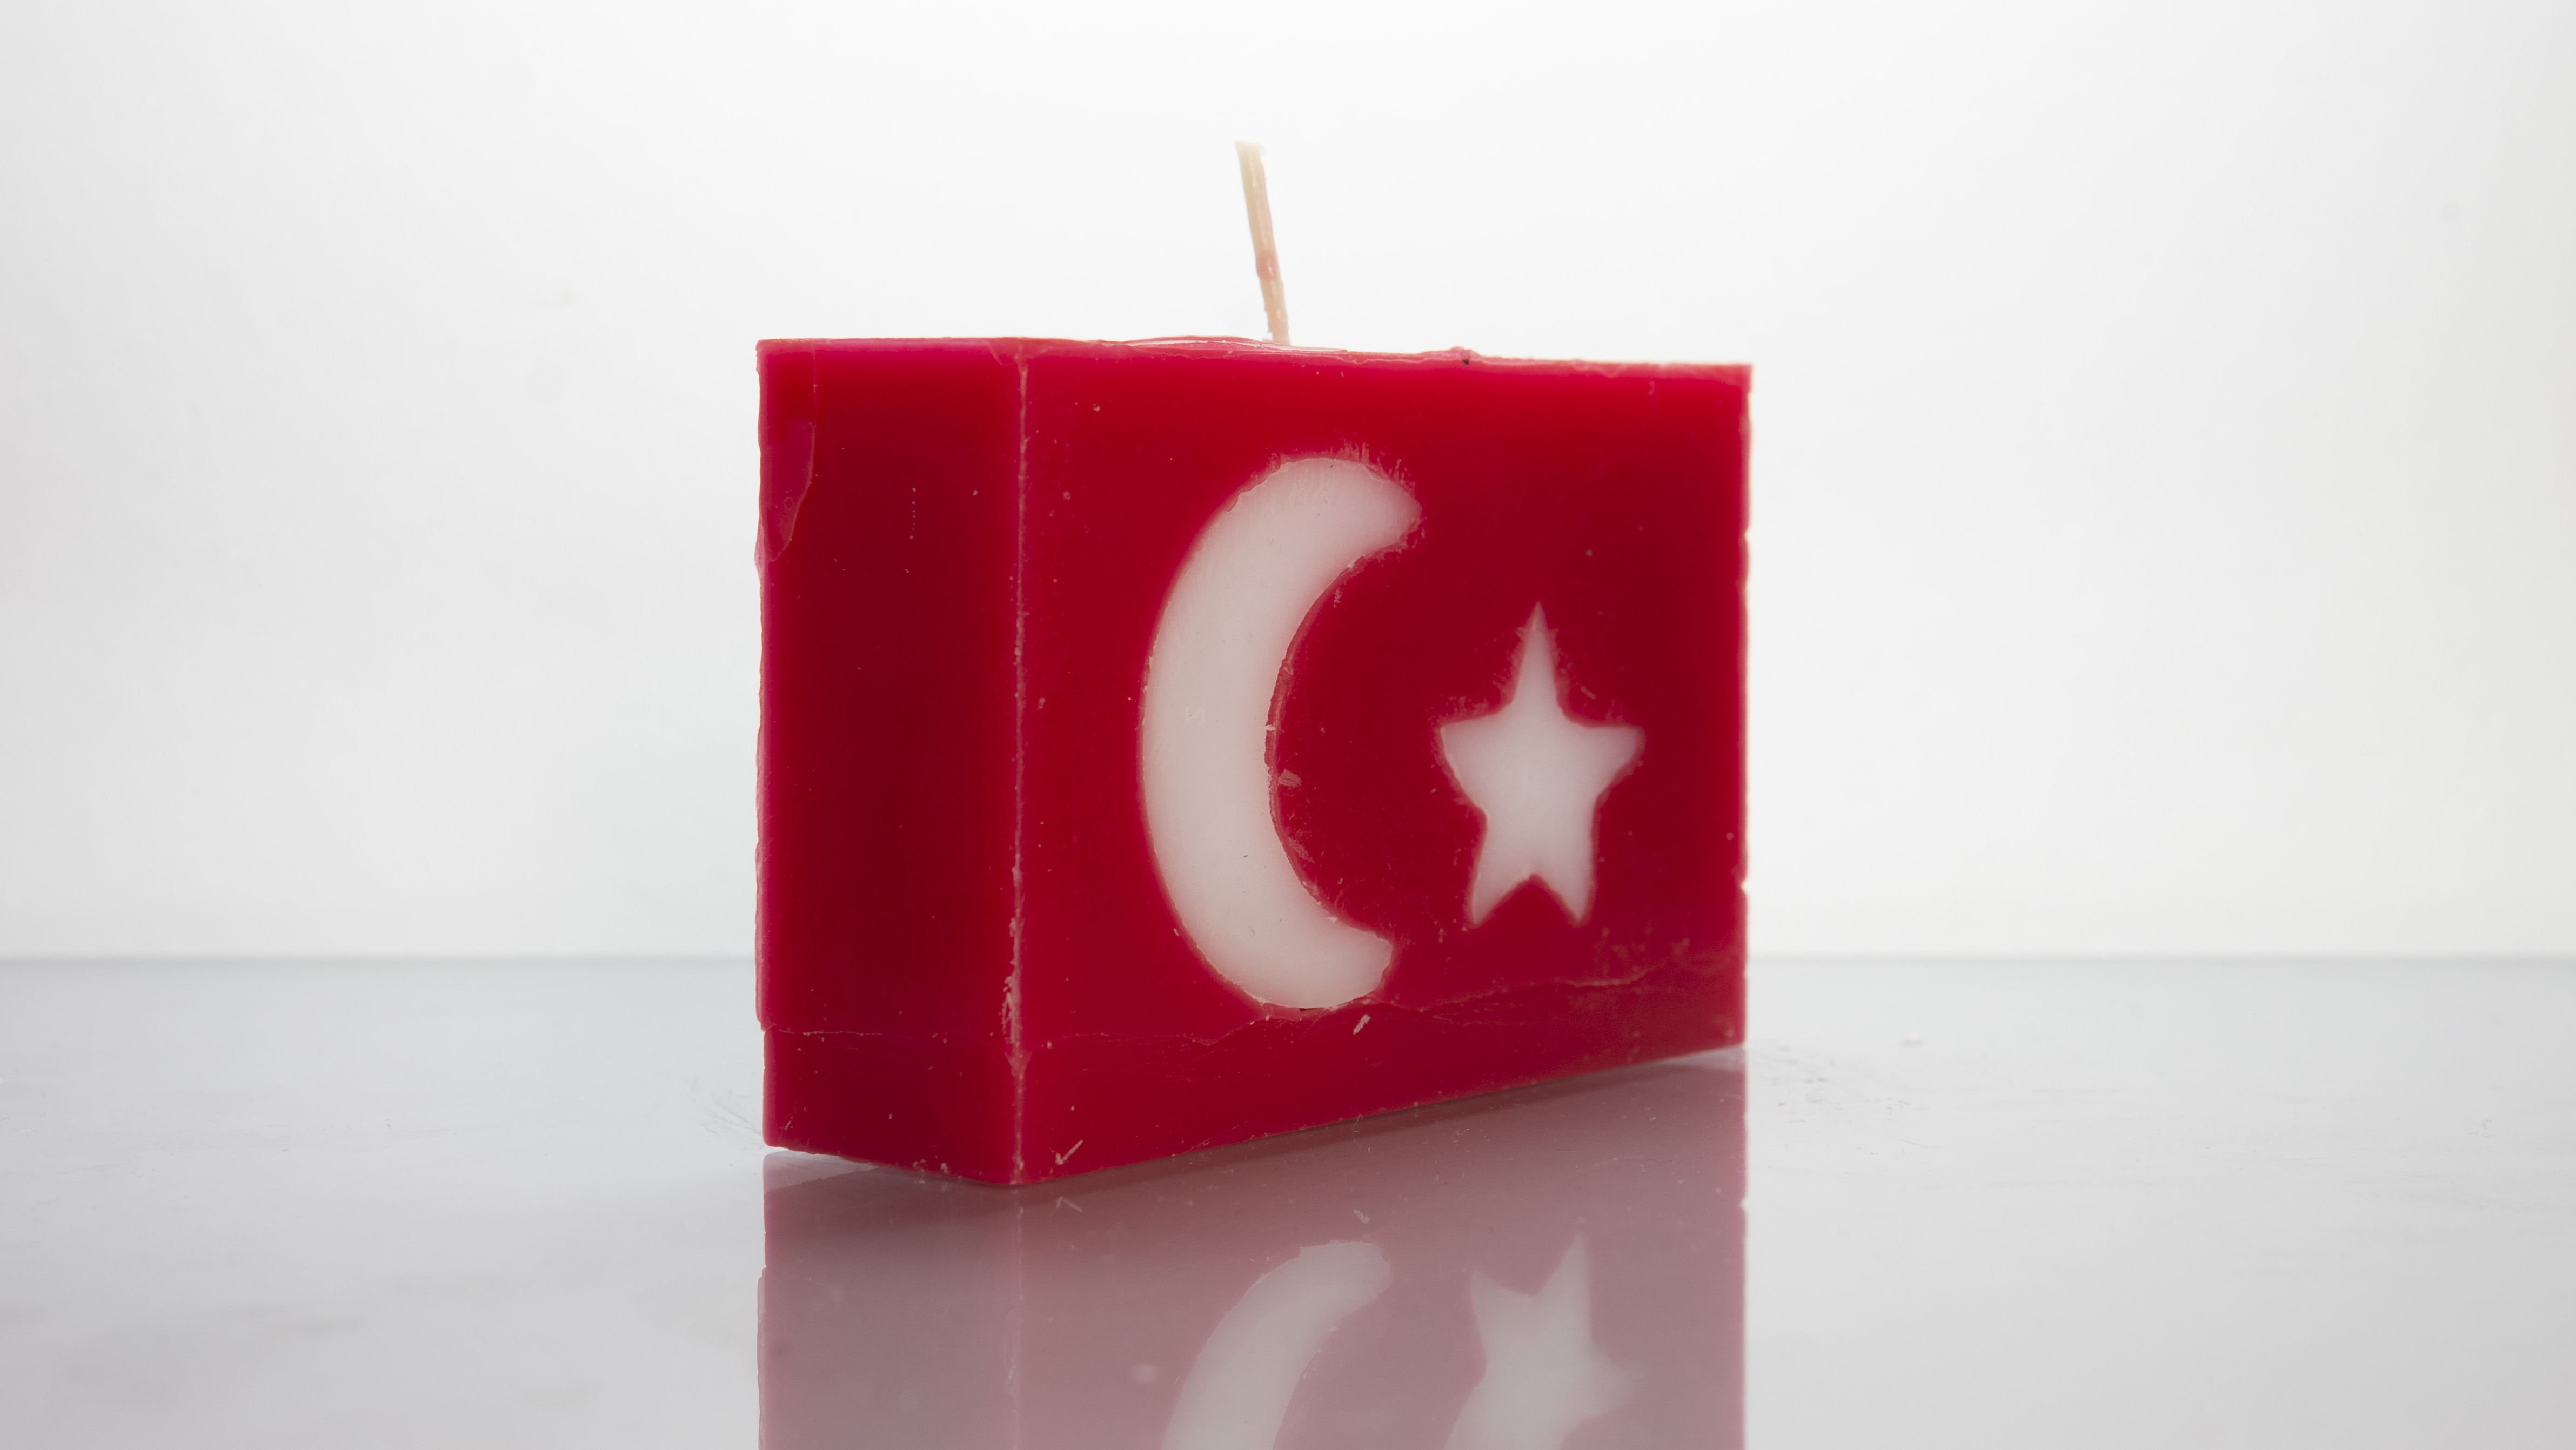 burn-a-flag: Turkey